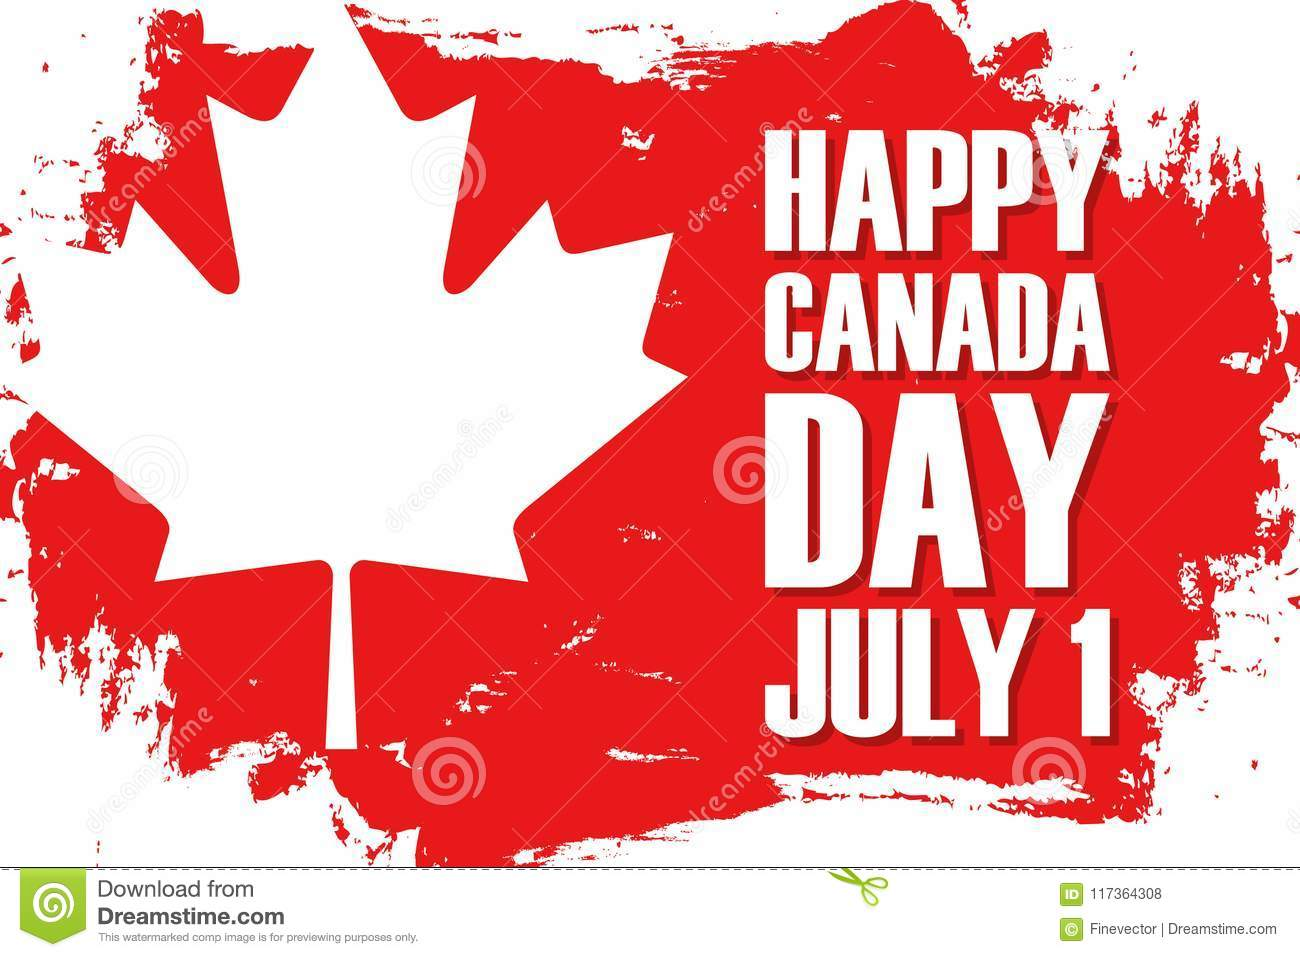 This day July 1 - 1 10